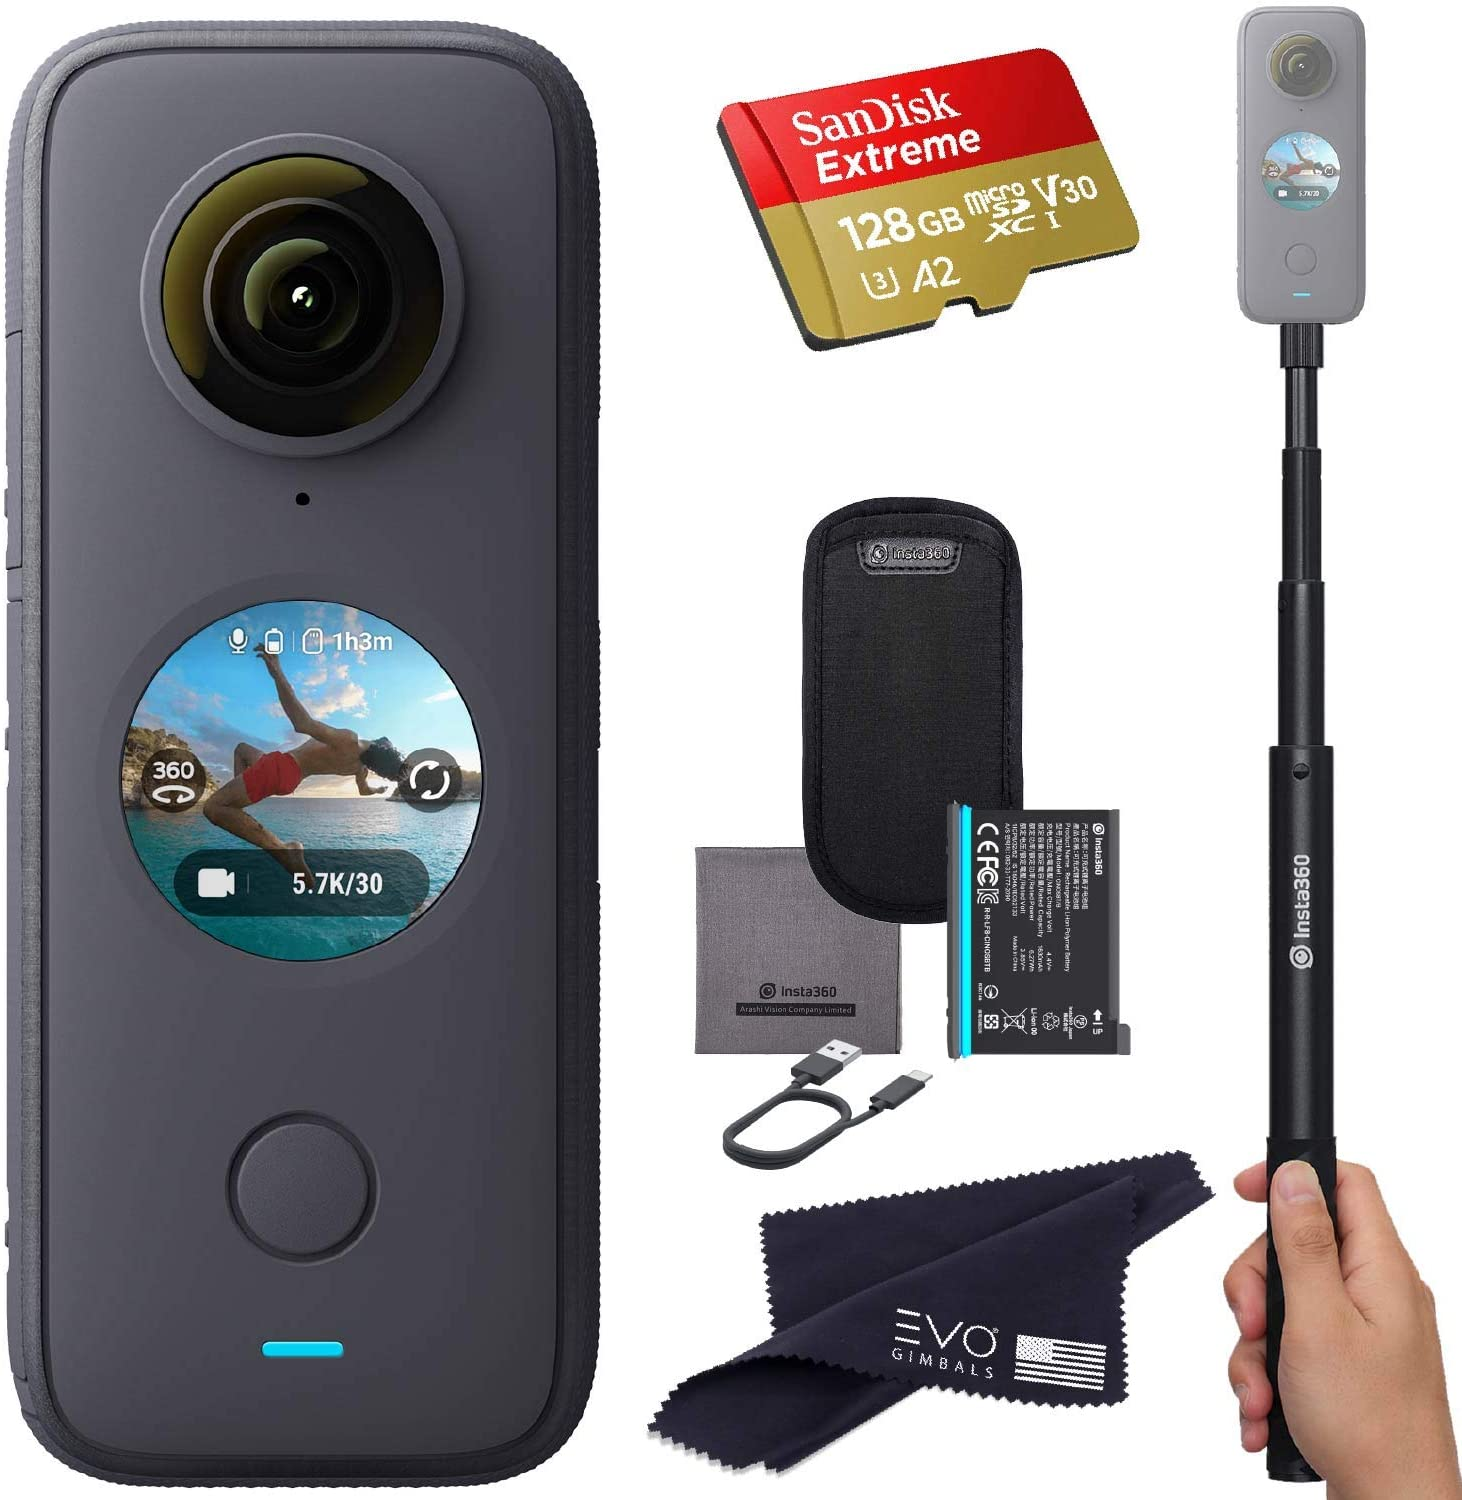 Insta360 ONE X2 360 Camera with Touchscreen - 5.7K30 360 Video, Front Steady Cam Mode, 18MP 360 Photo + InstaPano | Bundle Includes Invisible Selfie Stick (120cm) & 128GB Memory Card (3 Items)